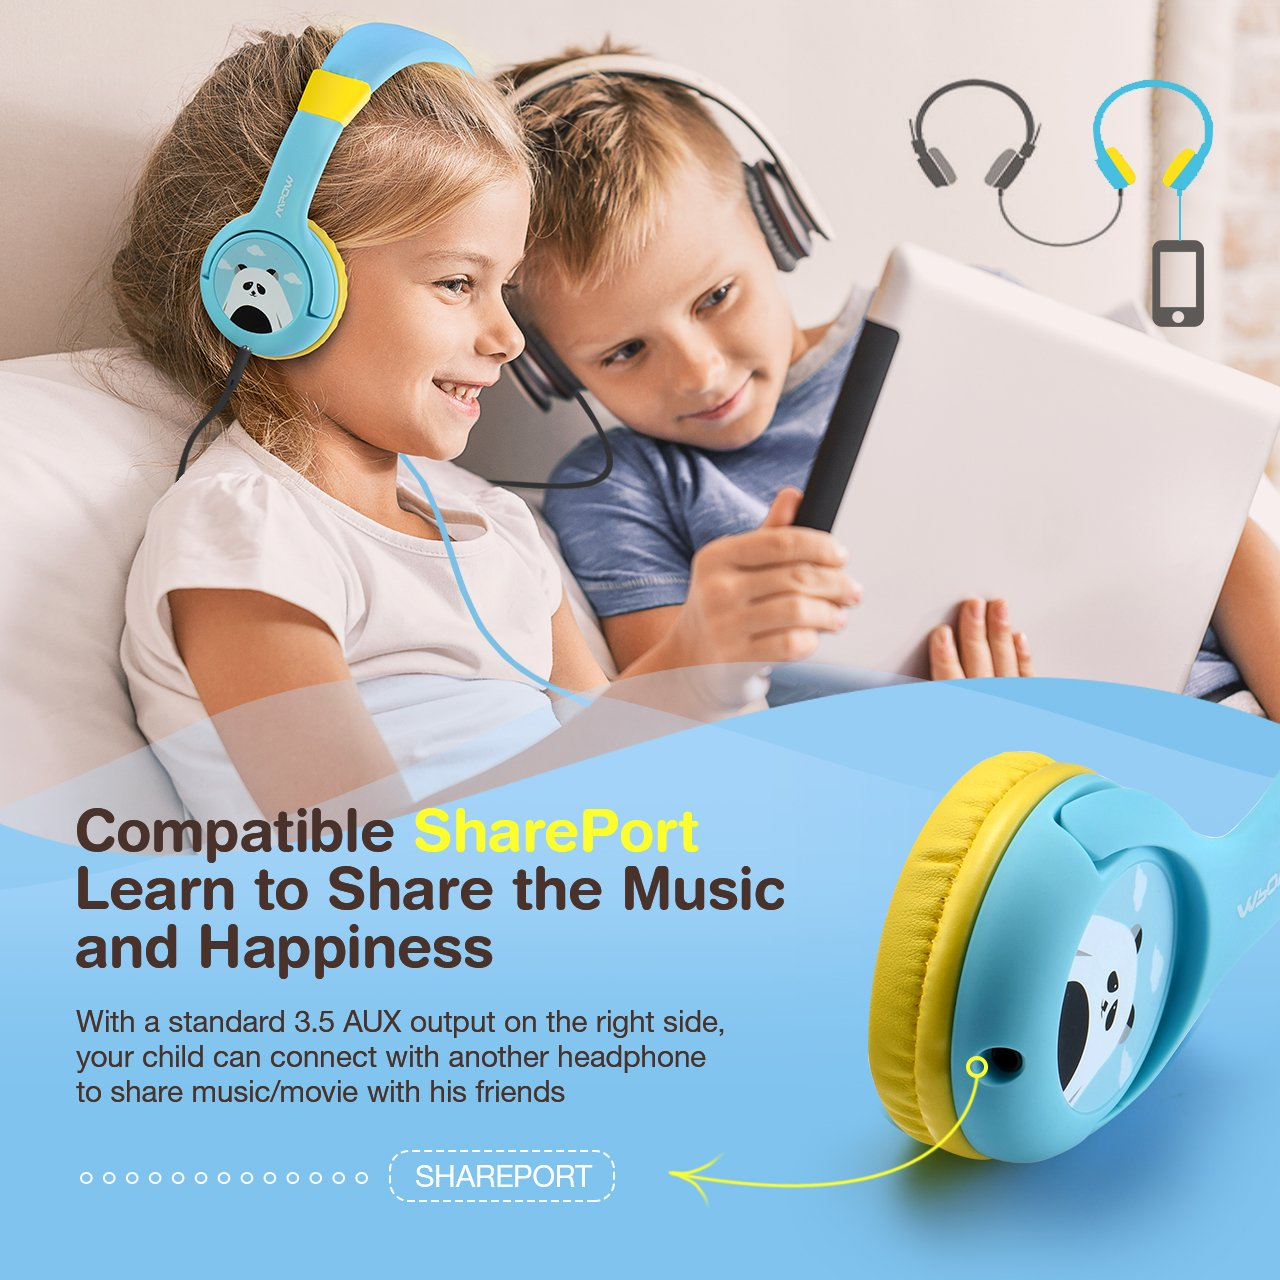 Mpow Kids Headphones with 85dB Volume Limited Hearing Protection & Music Sharing Function, Kids Friendly Safe Food Grade Material, Tangle-Free Cord, Wired On-Ear Headphones for Children Toddler Baby by Mpow (Image #3)